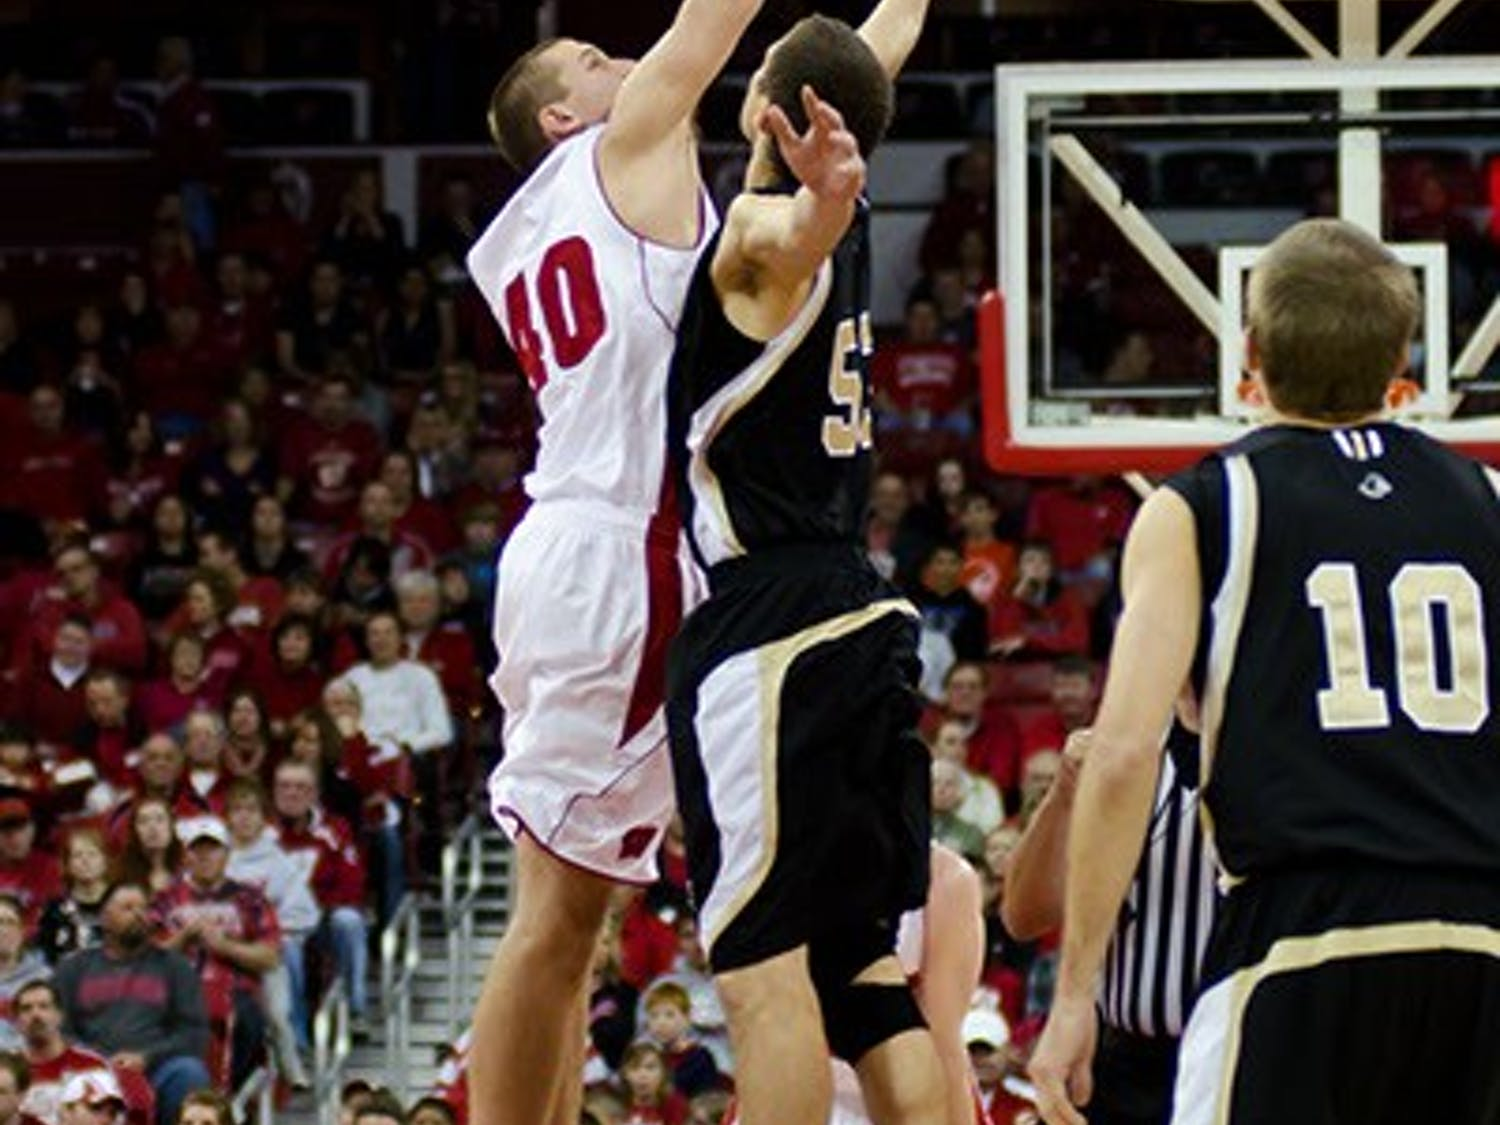 An experienced Wofford Terriers team (1-1) comes in to Madison looking to upset the Badgers (2-0) at the Kohl Center Saturday night.